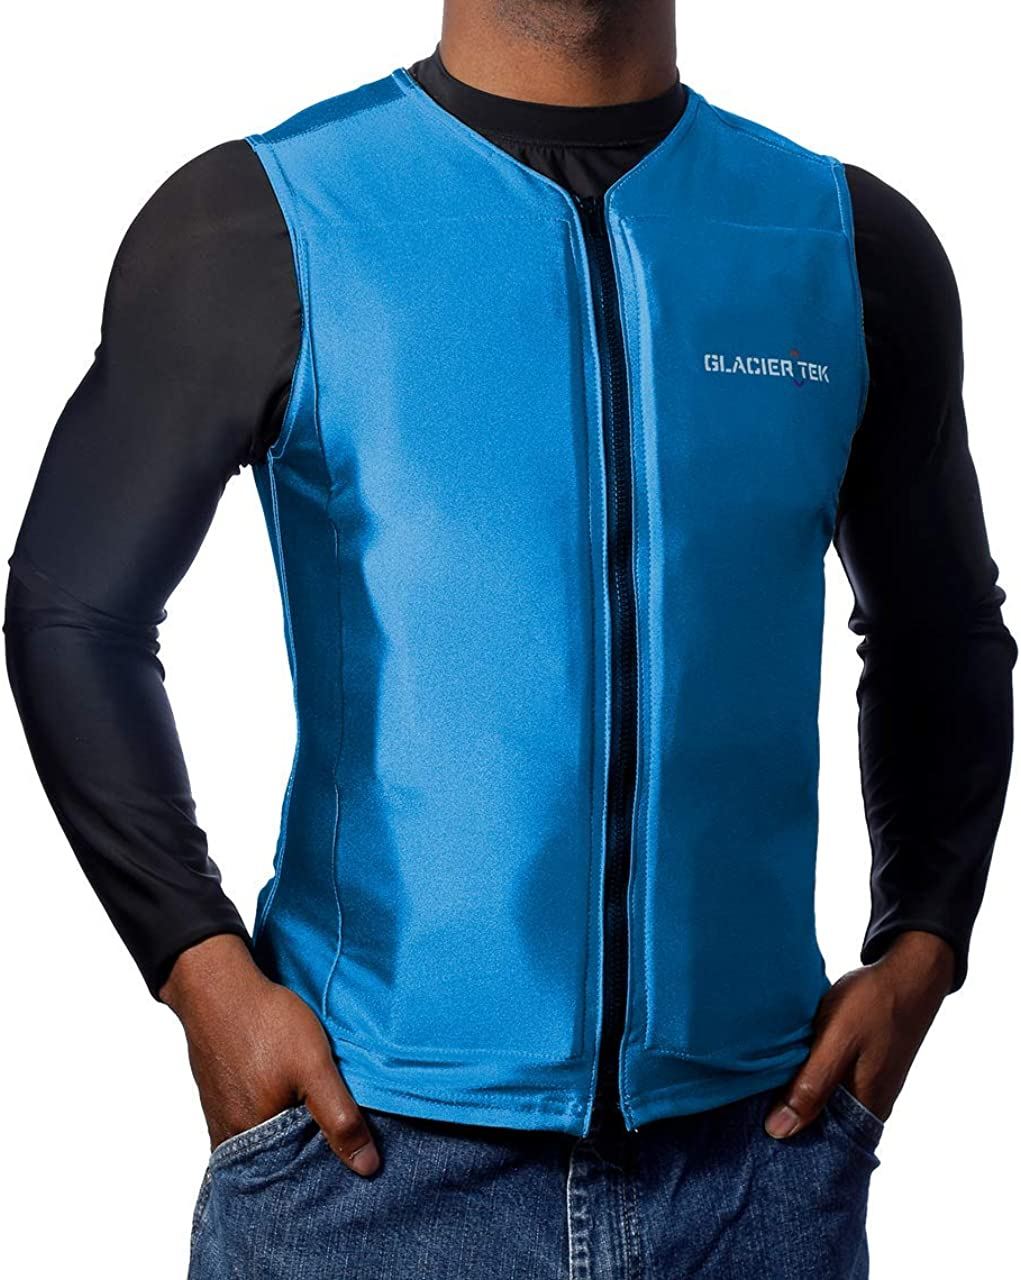 Glacier Tek Flex Vest Cool Vest with Nontoxic Cooling Packs